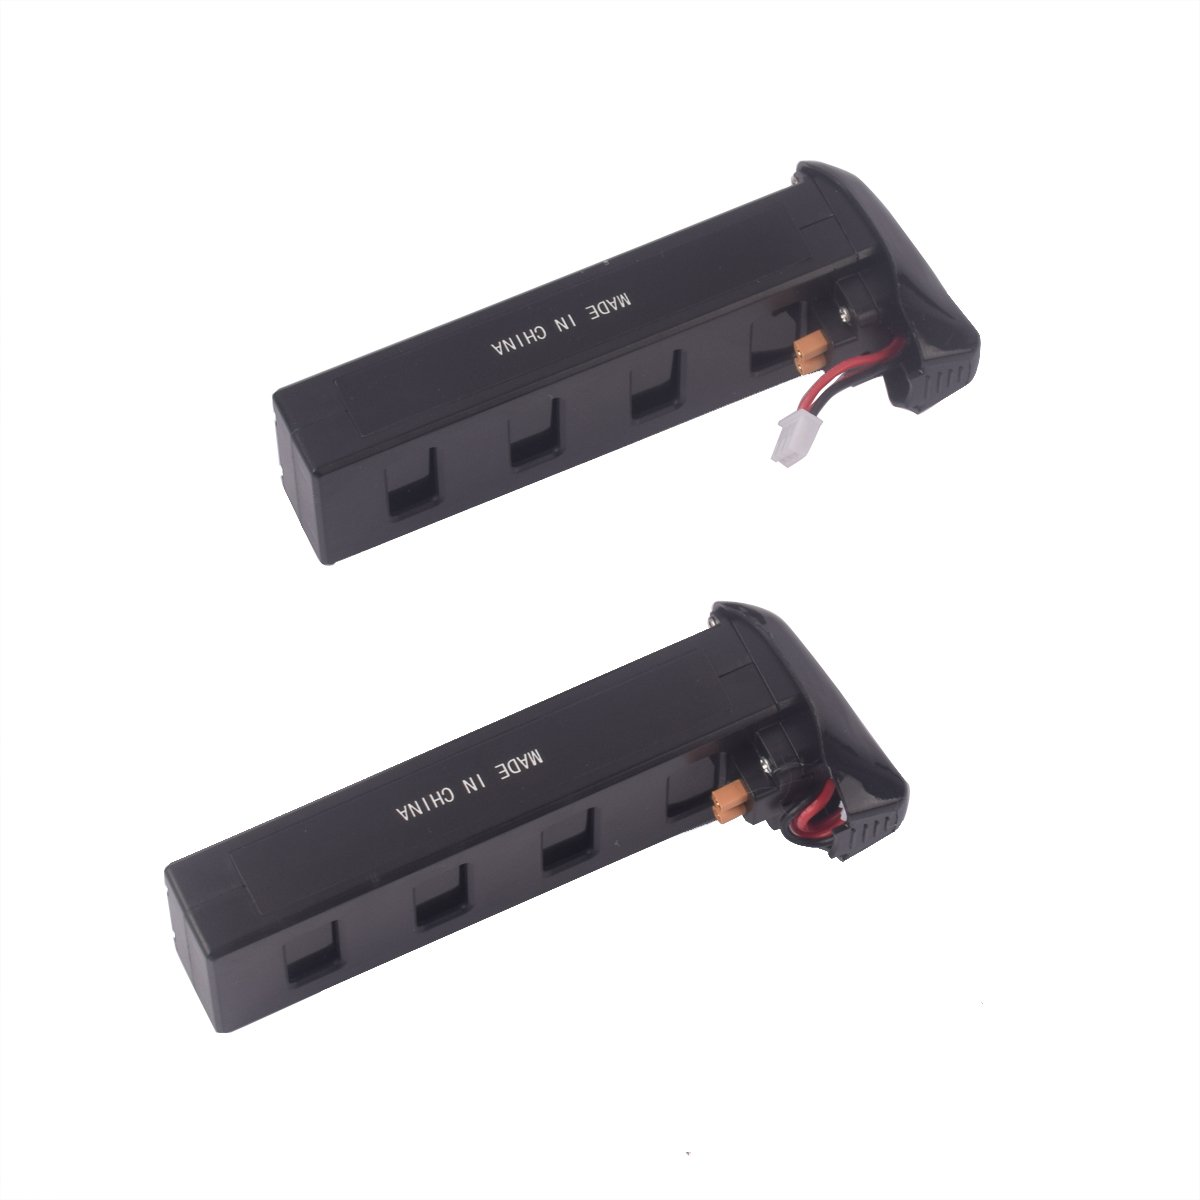 WST No Wires Connector Traxxas Female To EC3 Male Conversion Adapter for RC LiPo NiHM Battery x 3 PCS